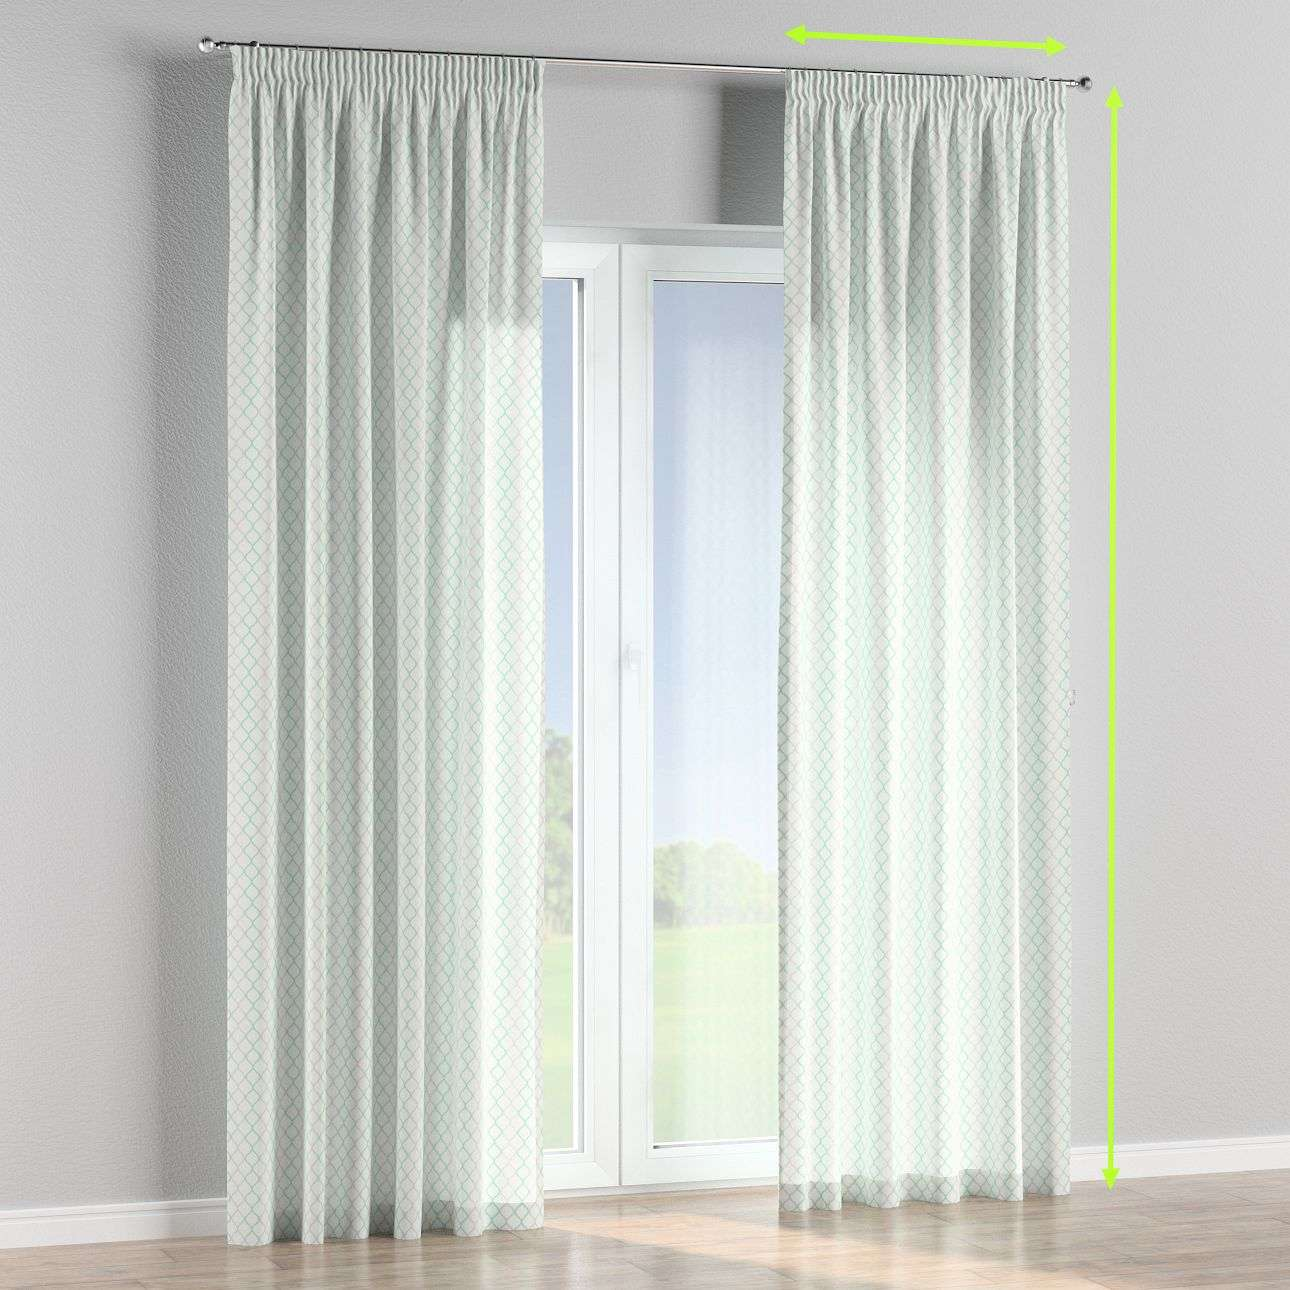 Pencil pleat curtains in collection Geometric, fabric: 141-47